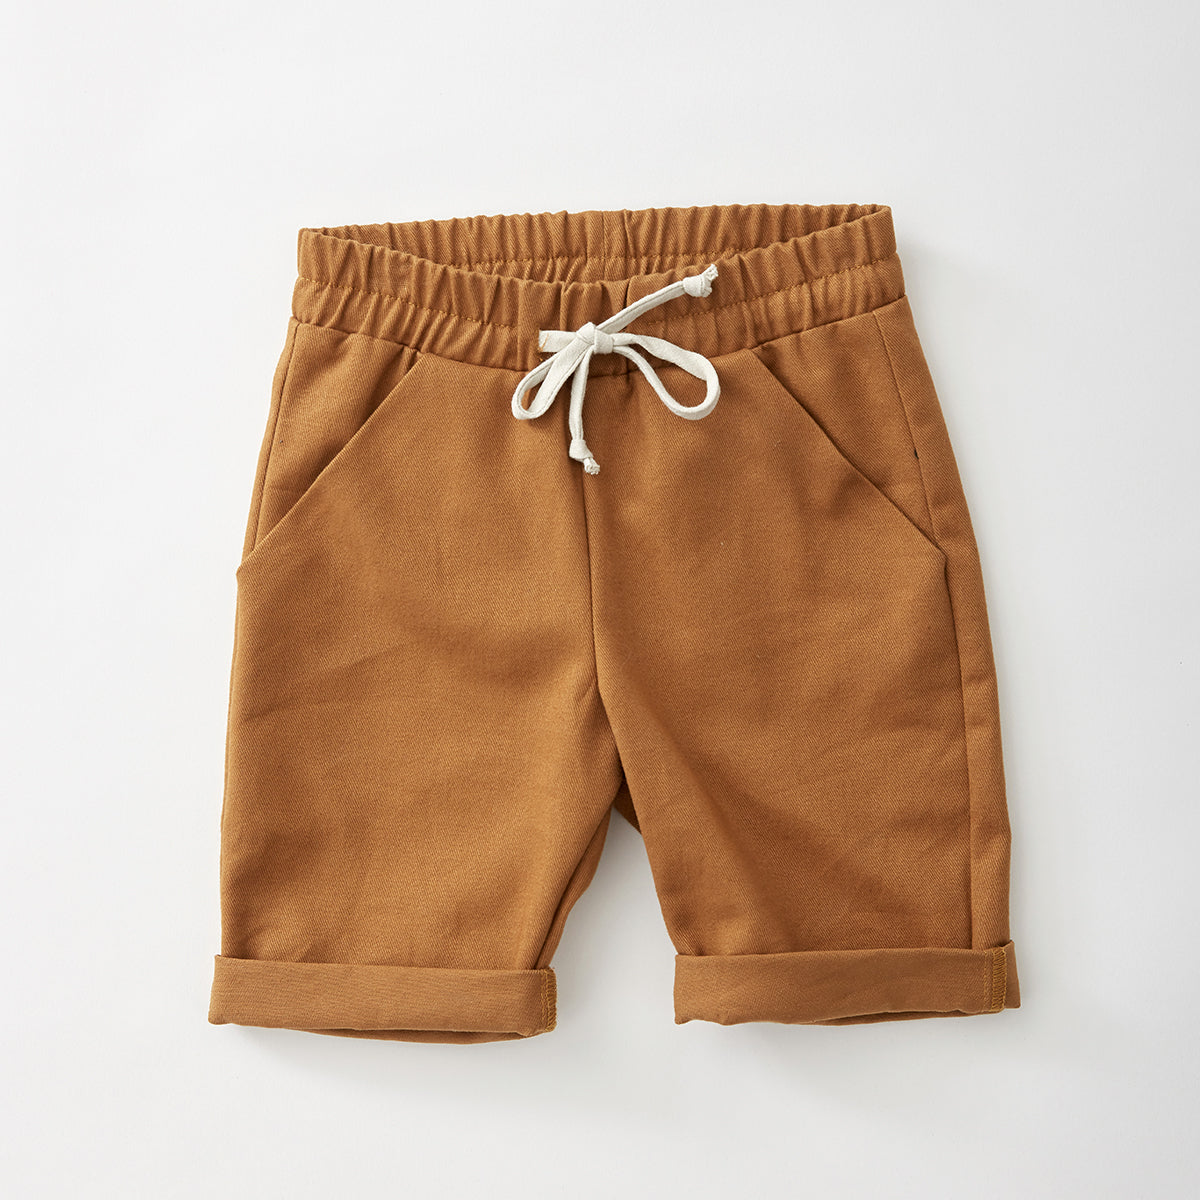 short-maxonii-ocre-cokluch-mini-printemps-ete-2019